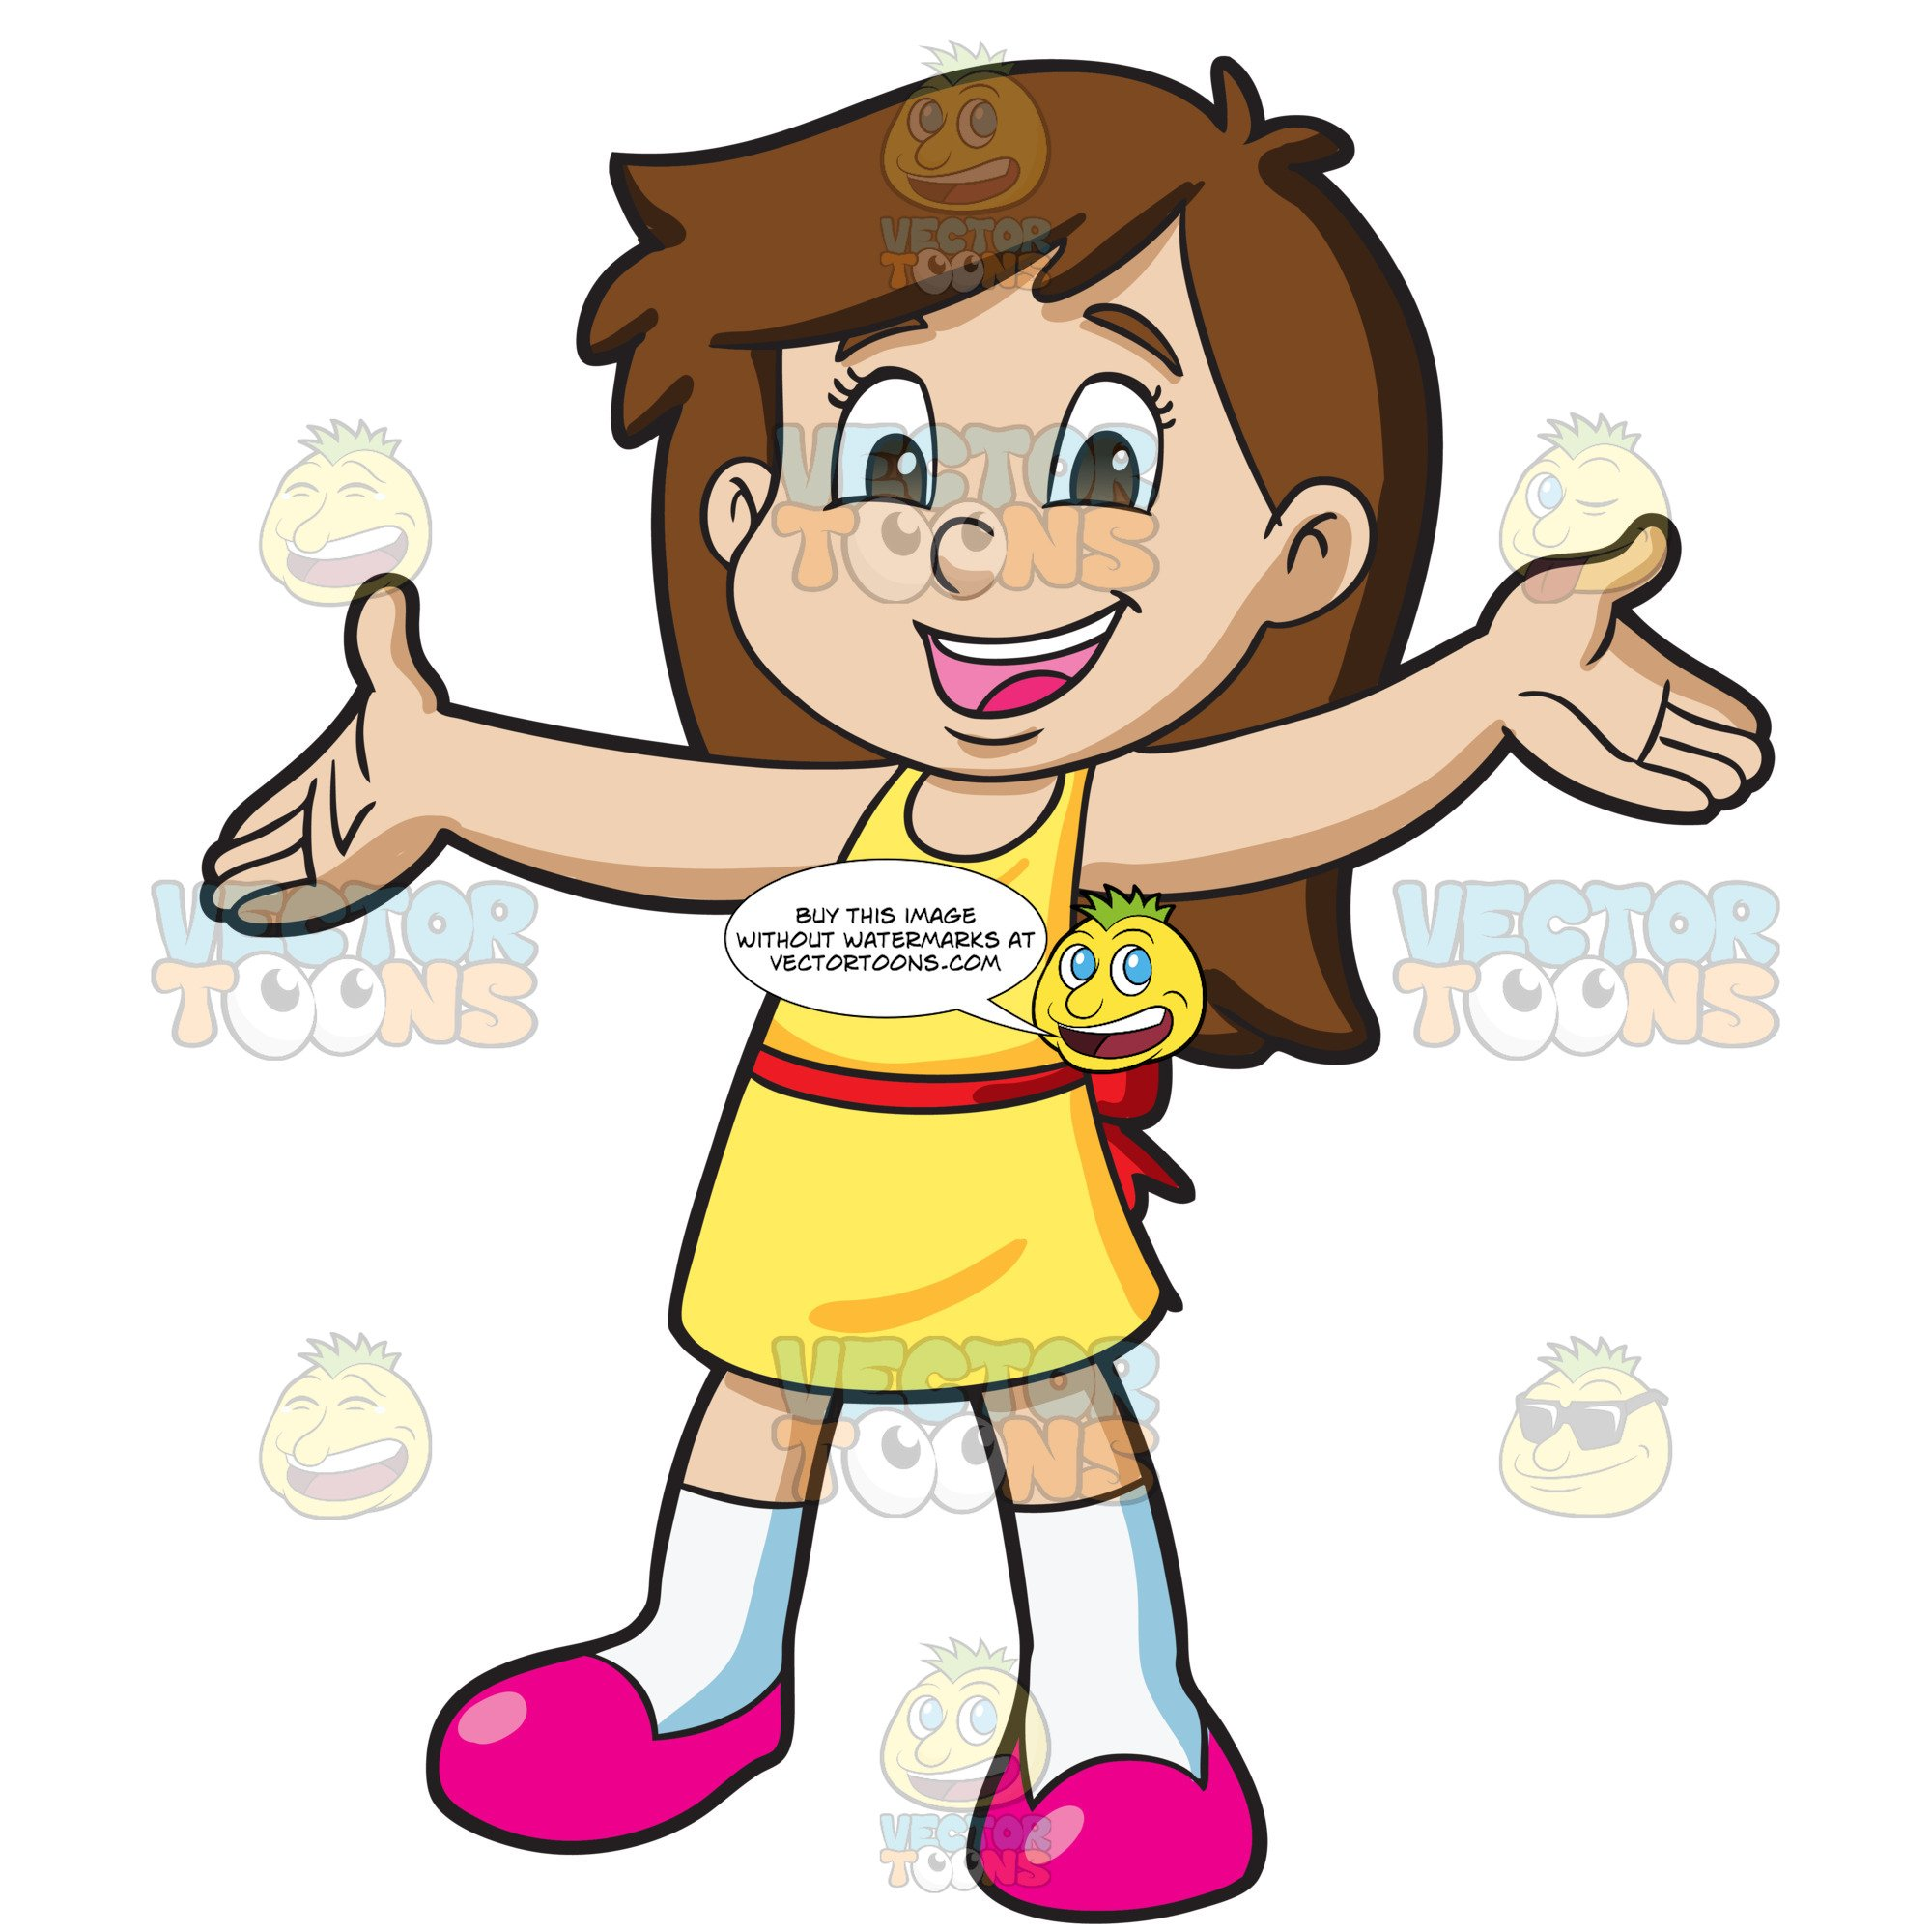 Young girl long brown hair clipart image royalty free stock A Young Girl Opening Her Arms In Anticipation image royalty free stock